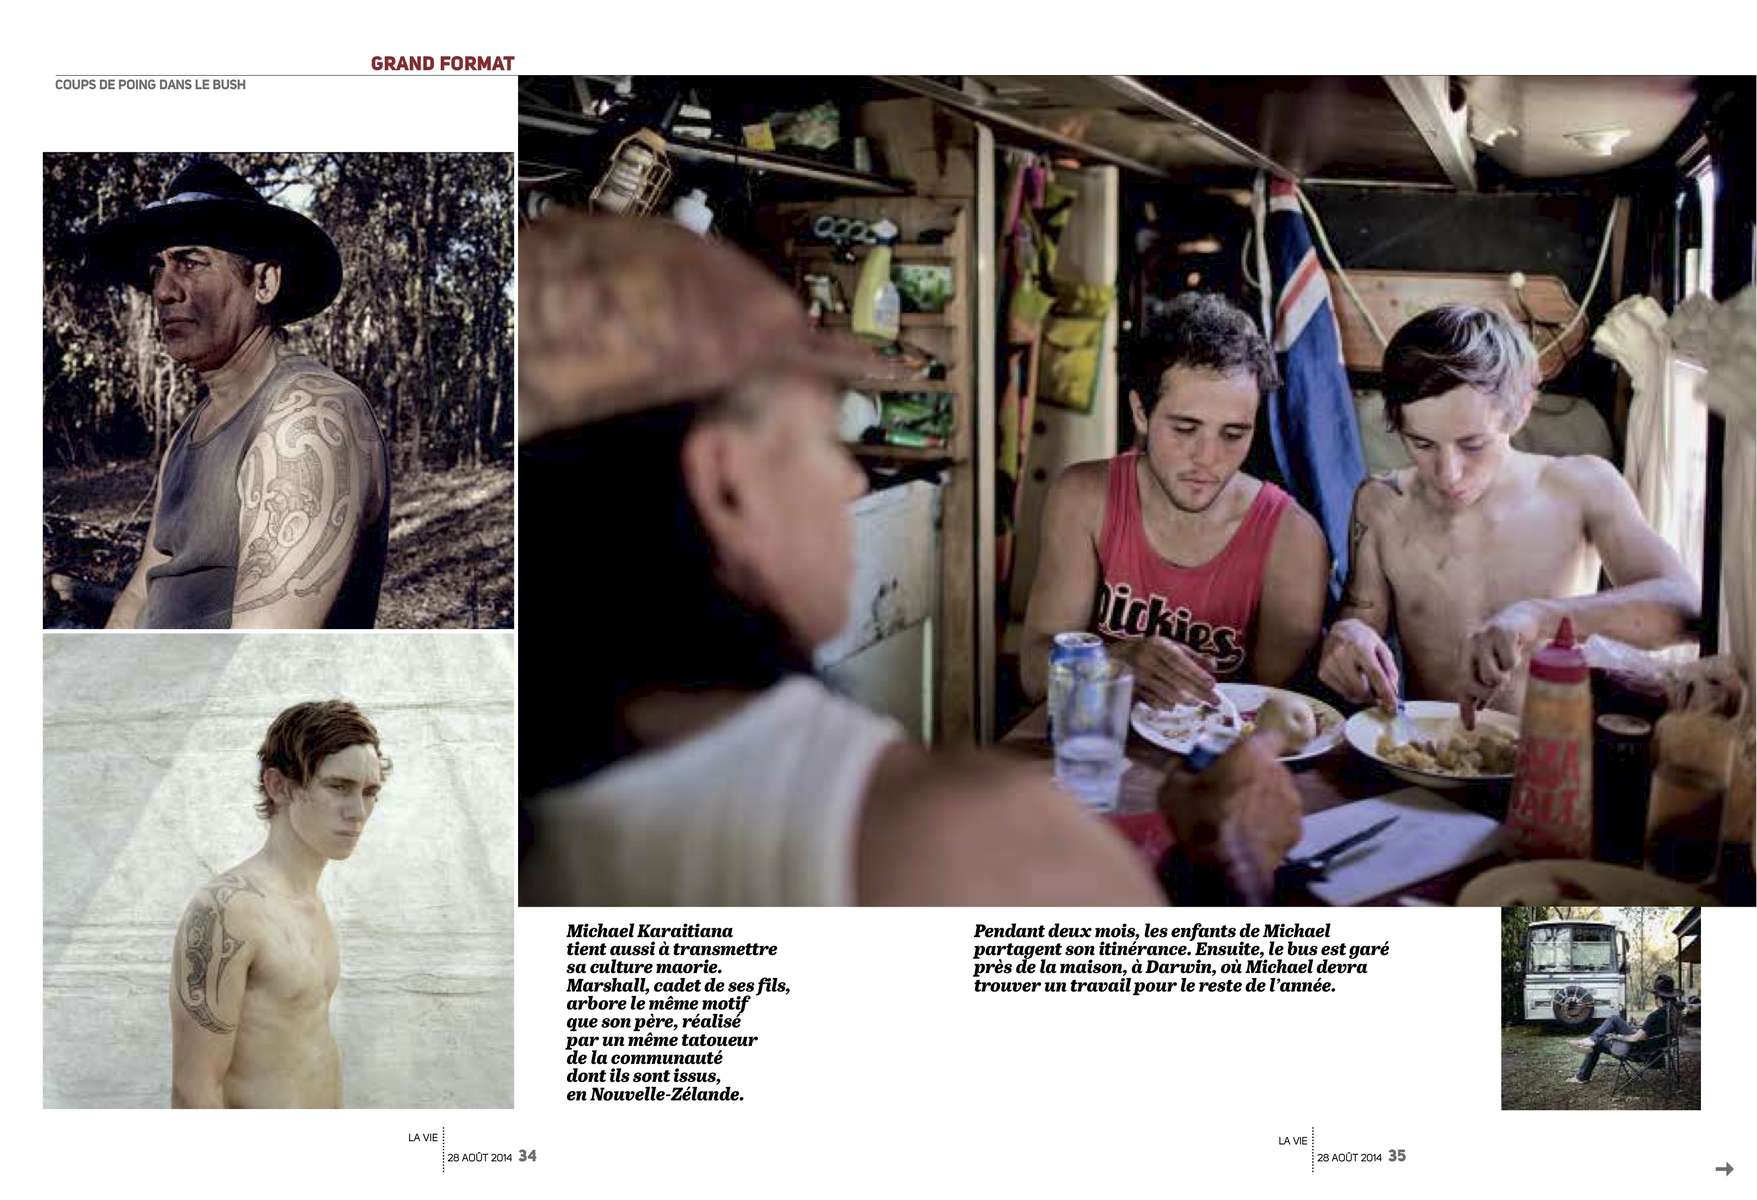 Boxing Tent, AustraliaFrench magazine, La Vie, August 2014